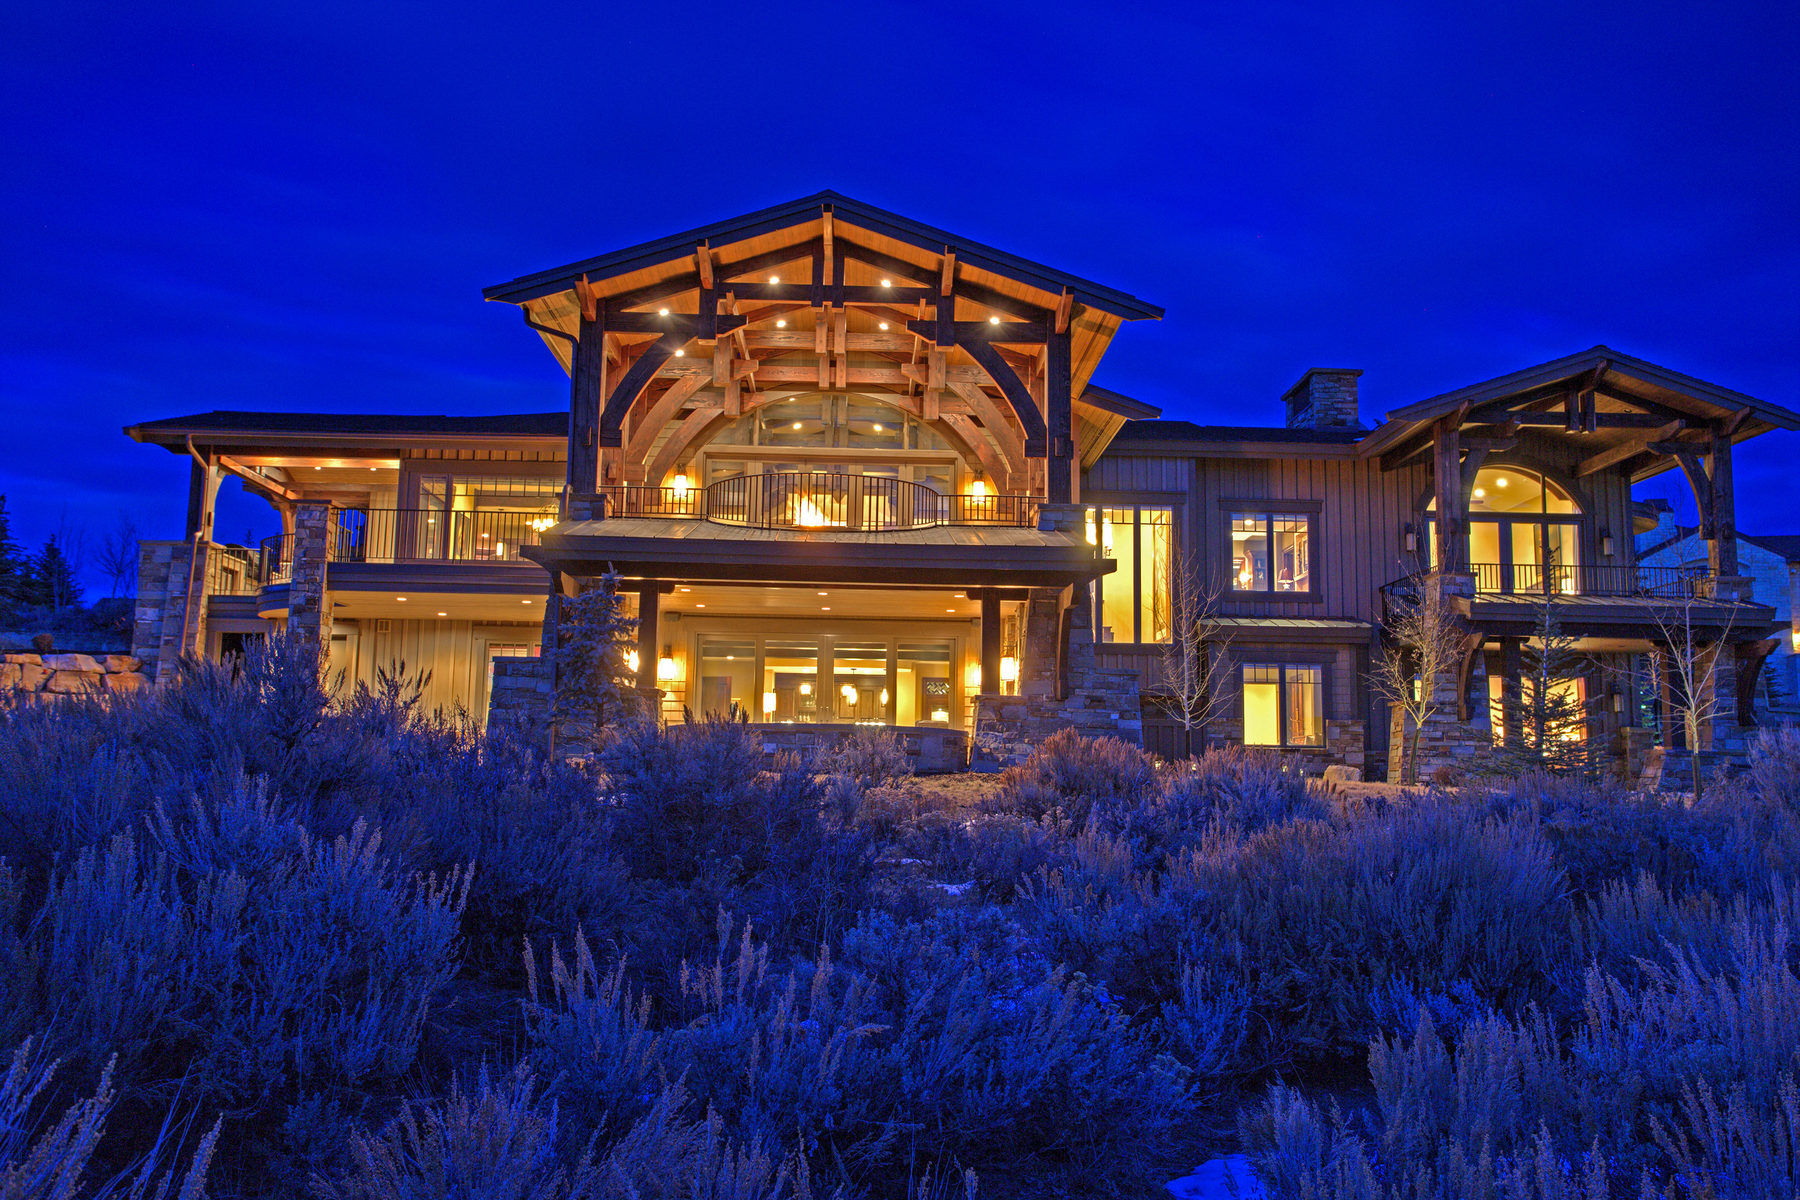 Villa per Vendita alle ore Spectacular Home in Promontory. Featured in the 2013 Parade of Homes! 2817 Blue Sage Trl Park City, Utah, 84098 Stati Uniti